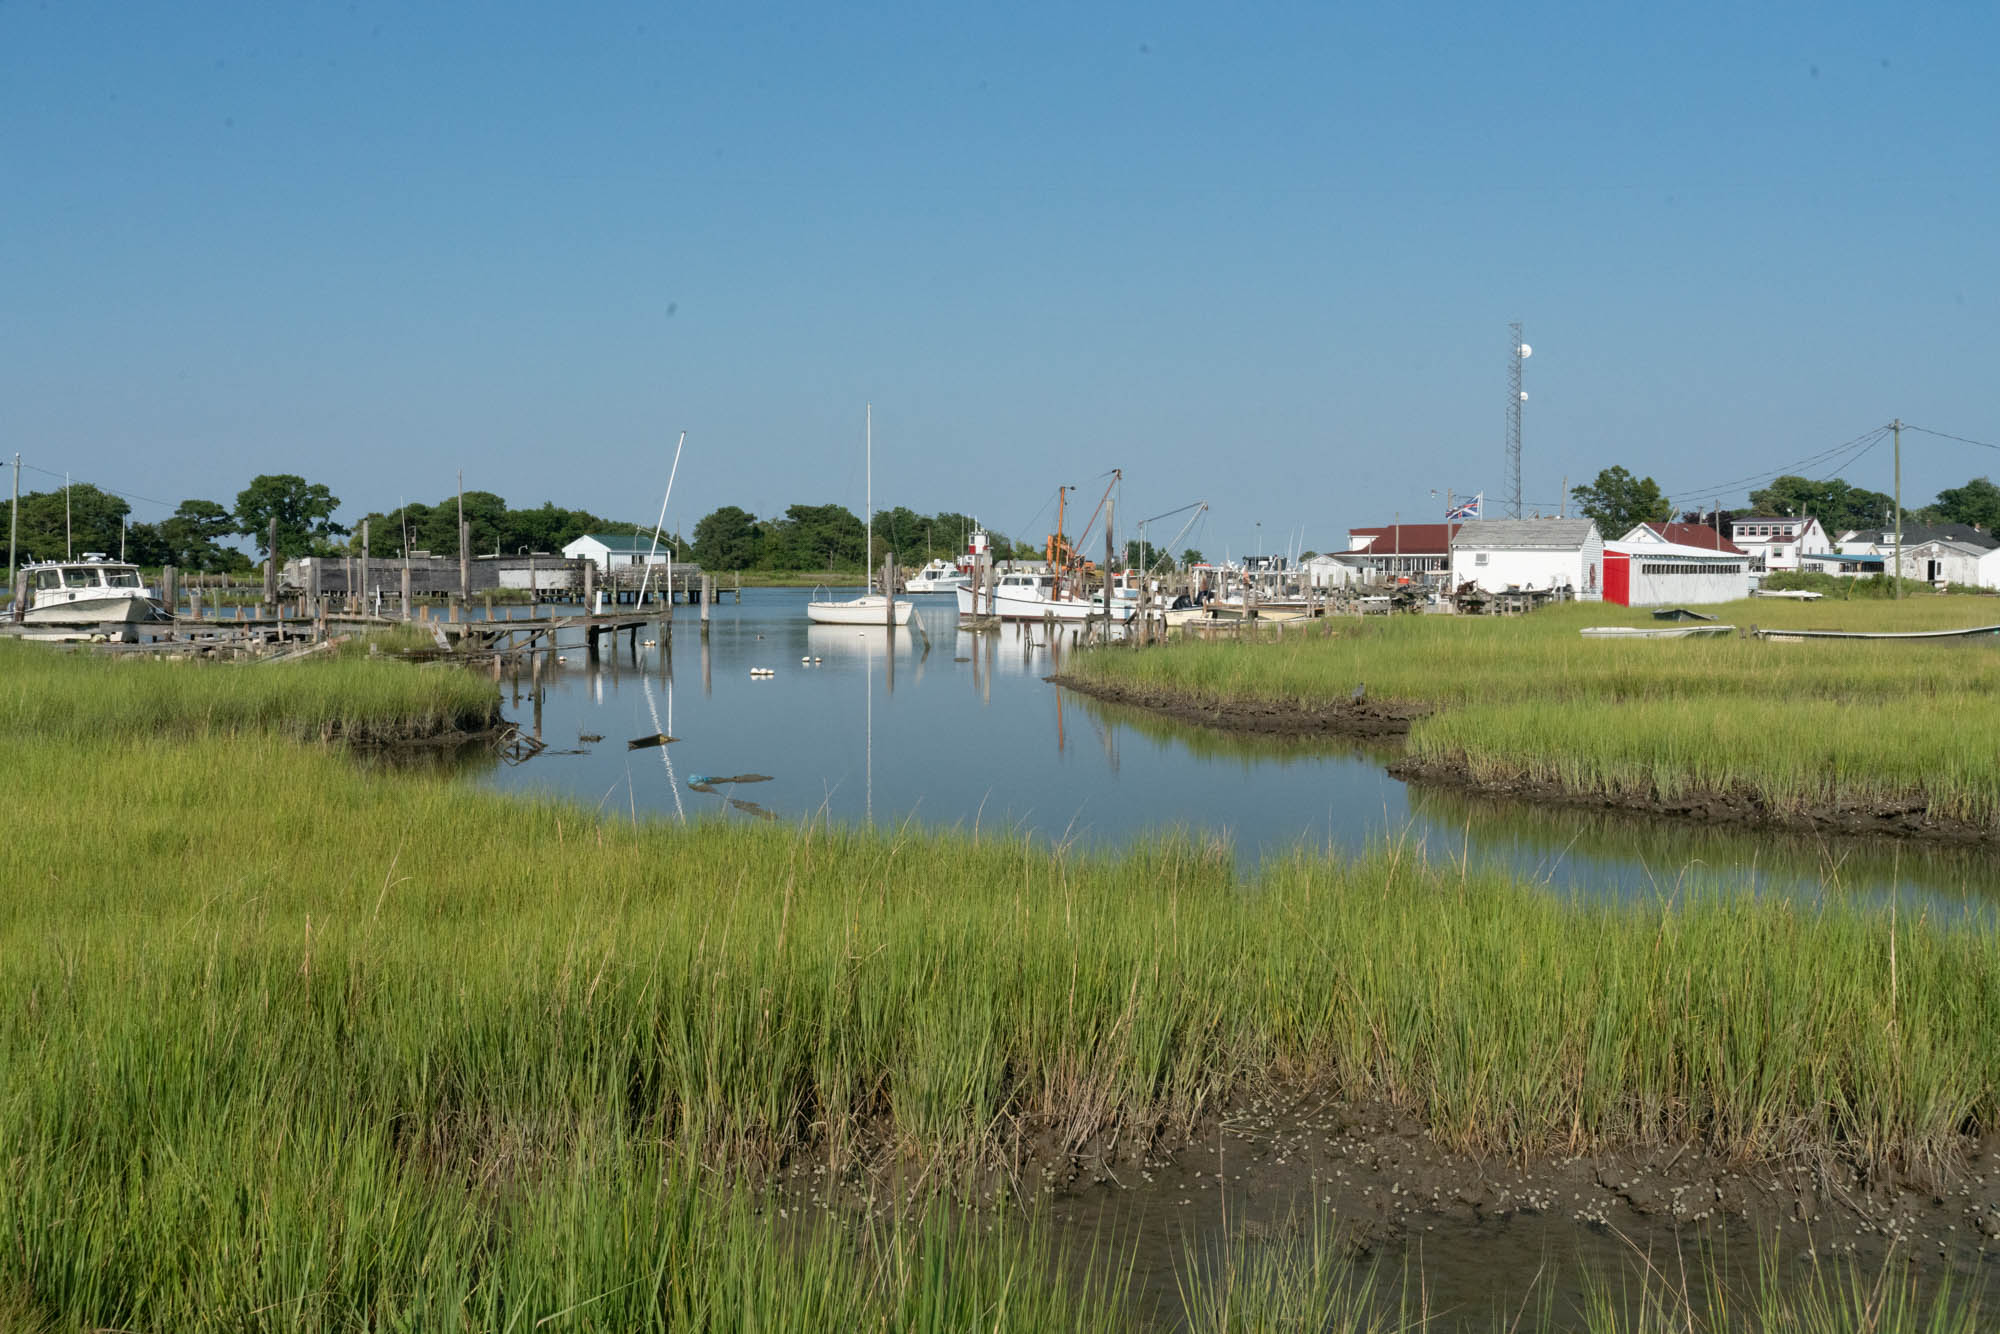 Scientists report that about a dozen communities on Maryland's Eastern Shore, including  Smith Island and Crisfield, already are coping with disruptive flooding. (Jordan Laird/News21)